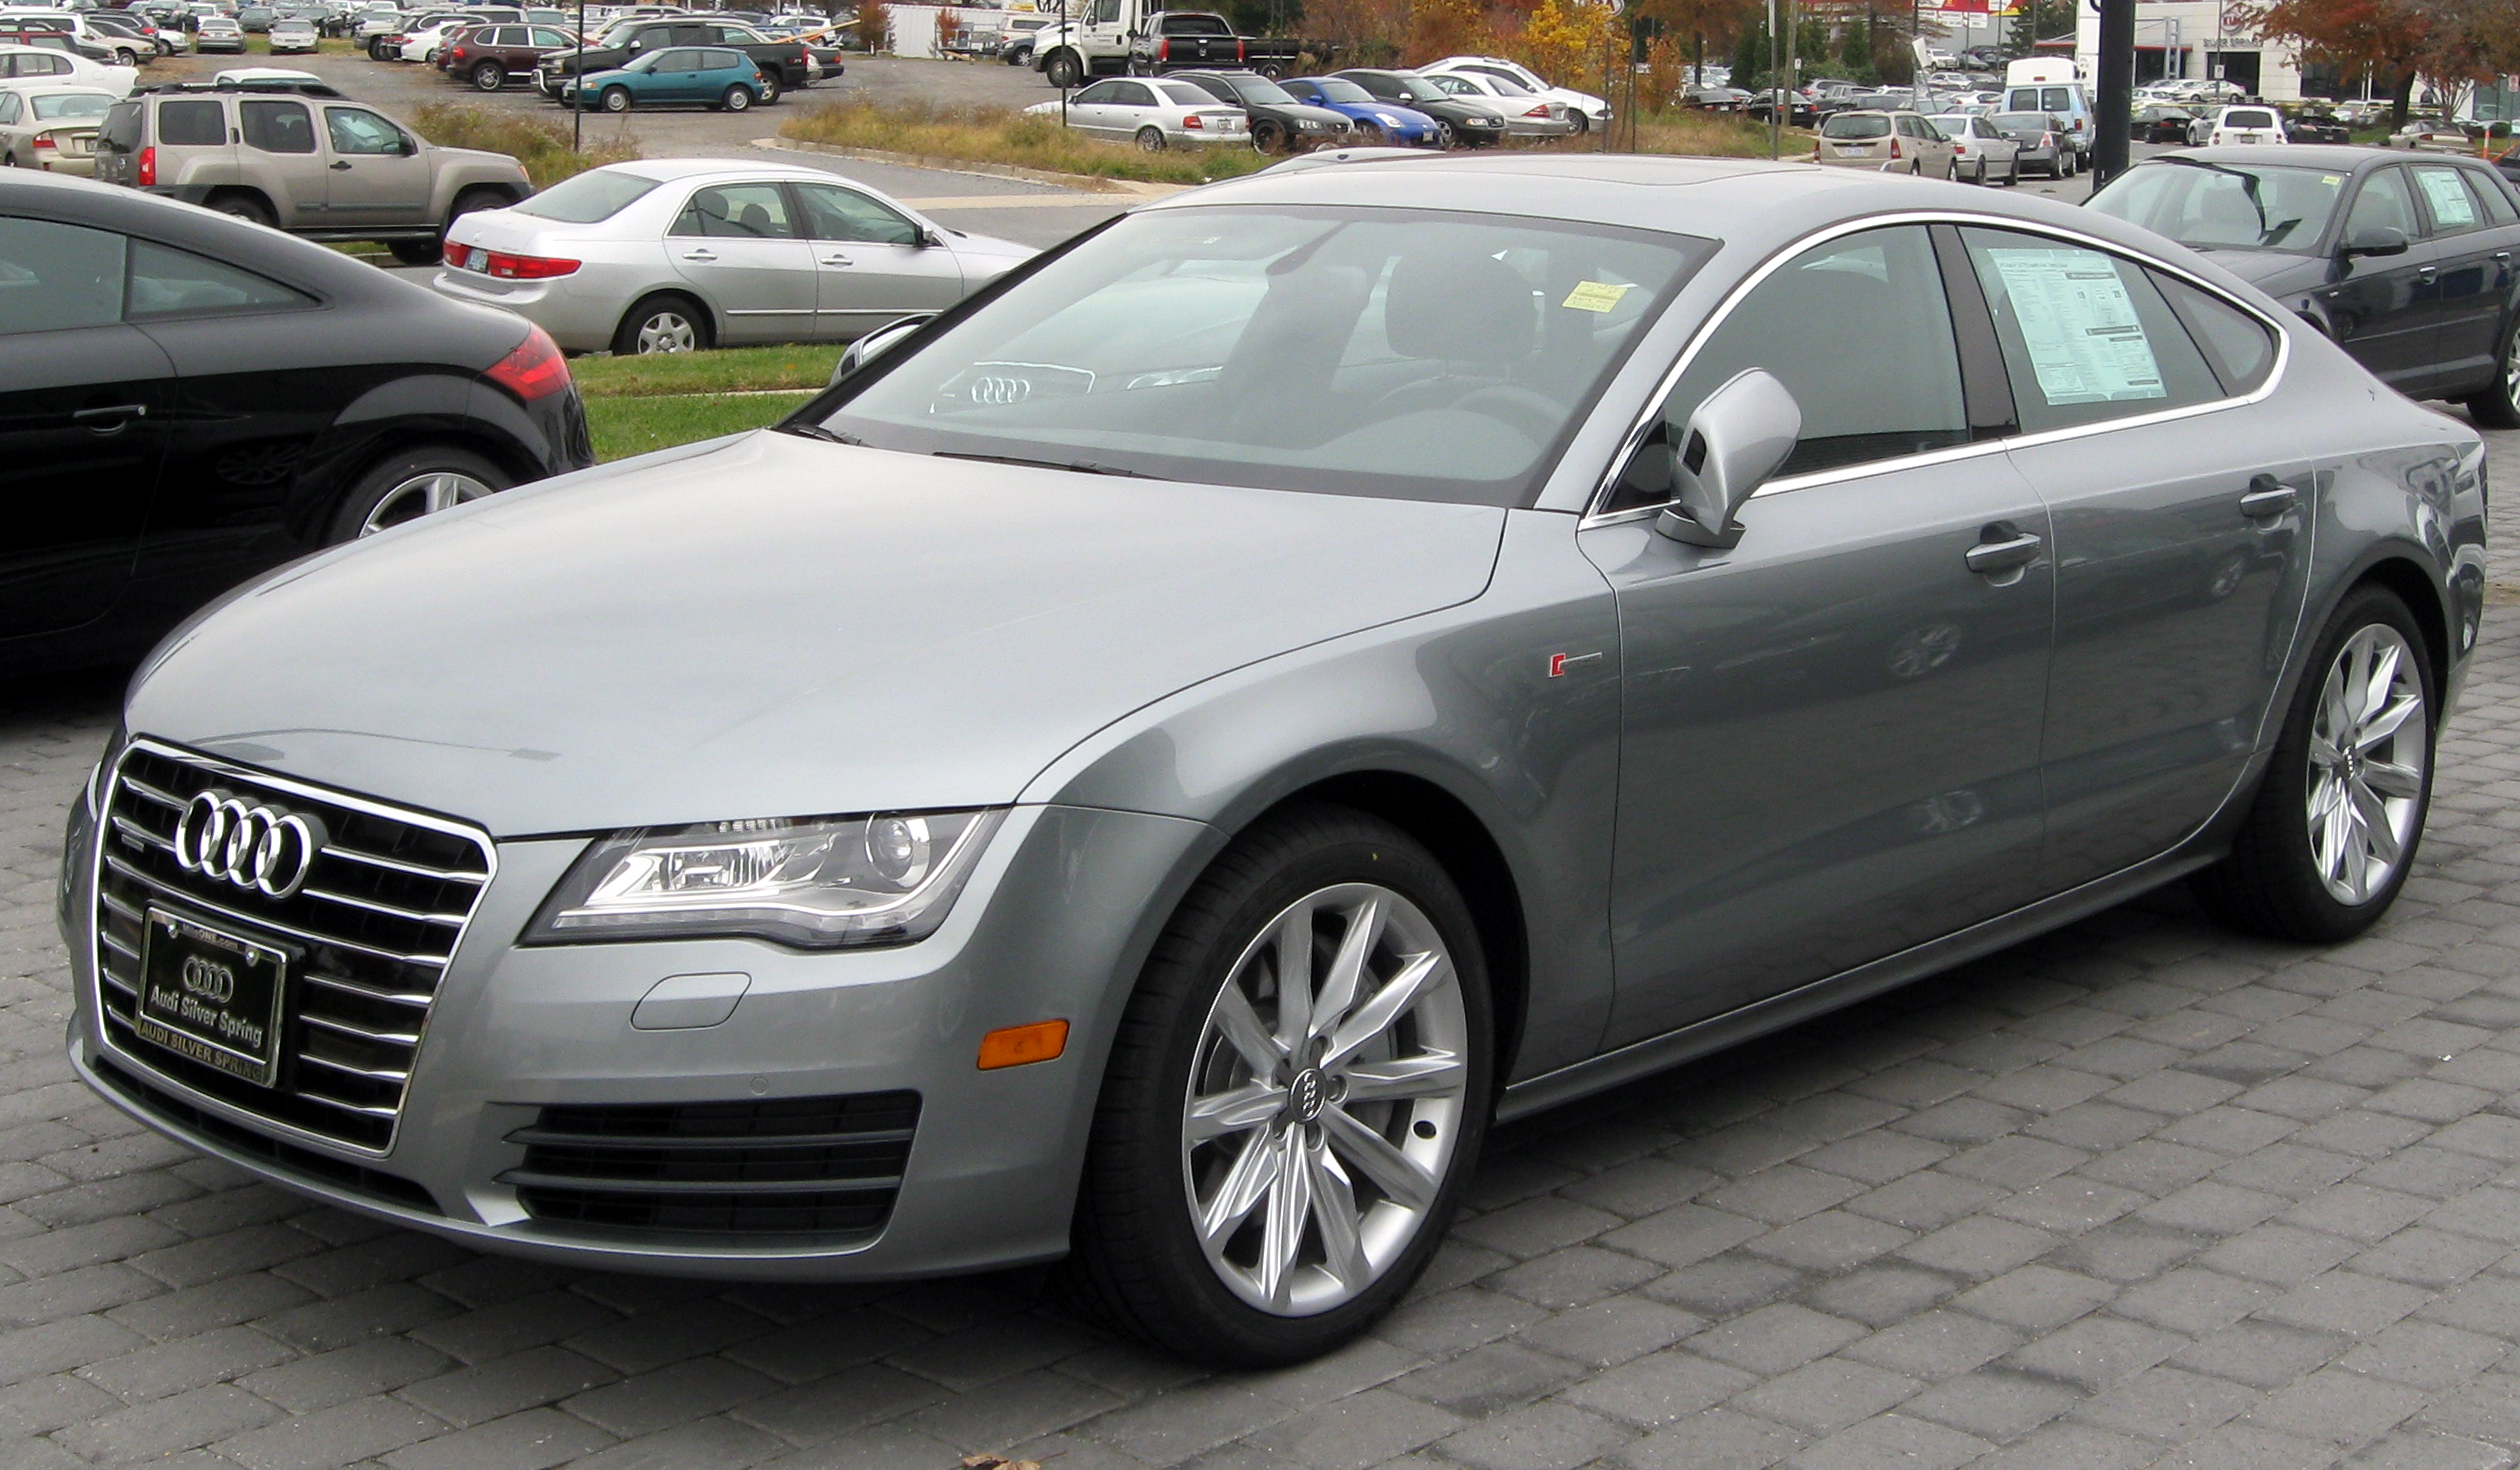 File 2012 Audi A7 11 10 2011 Jpg Wikimedia Commons